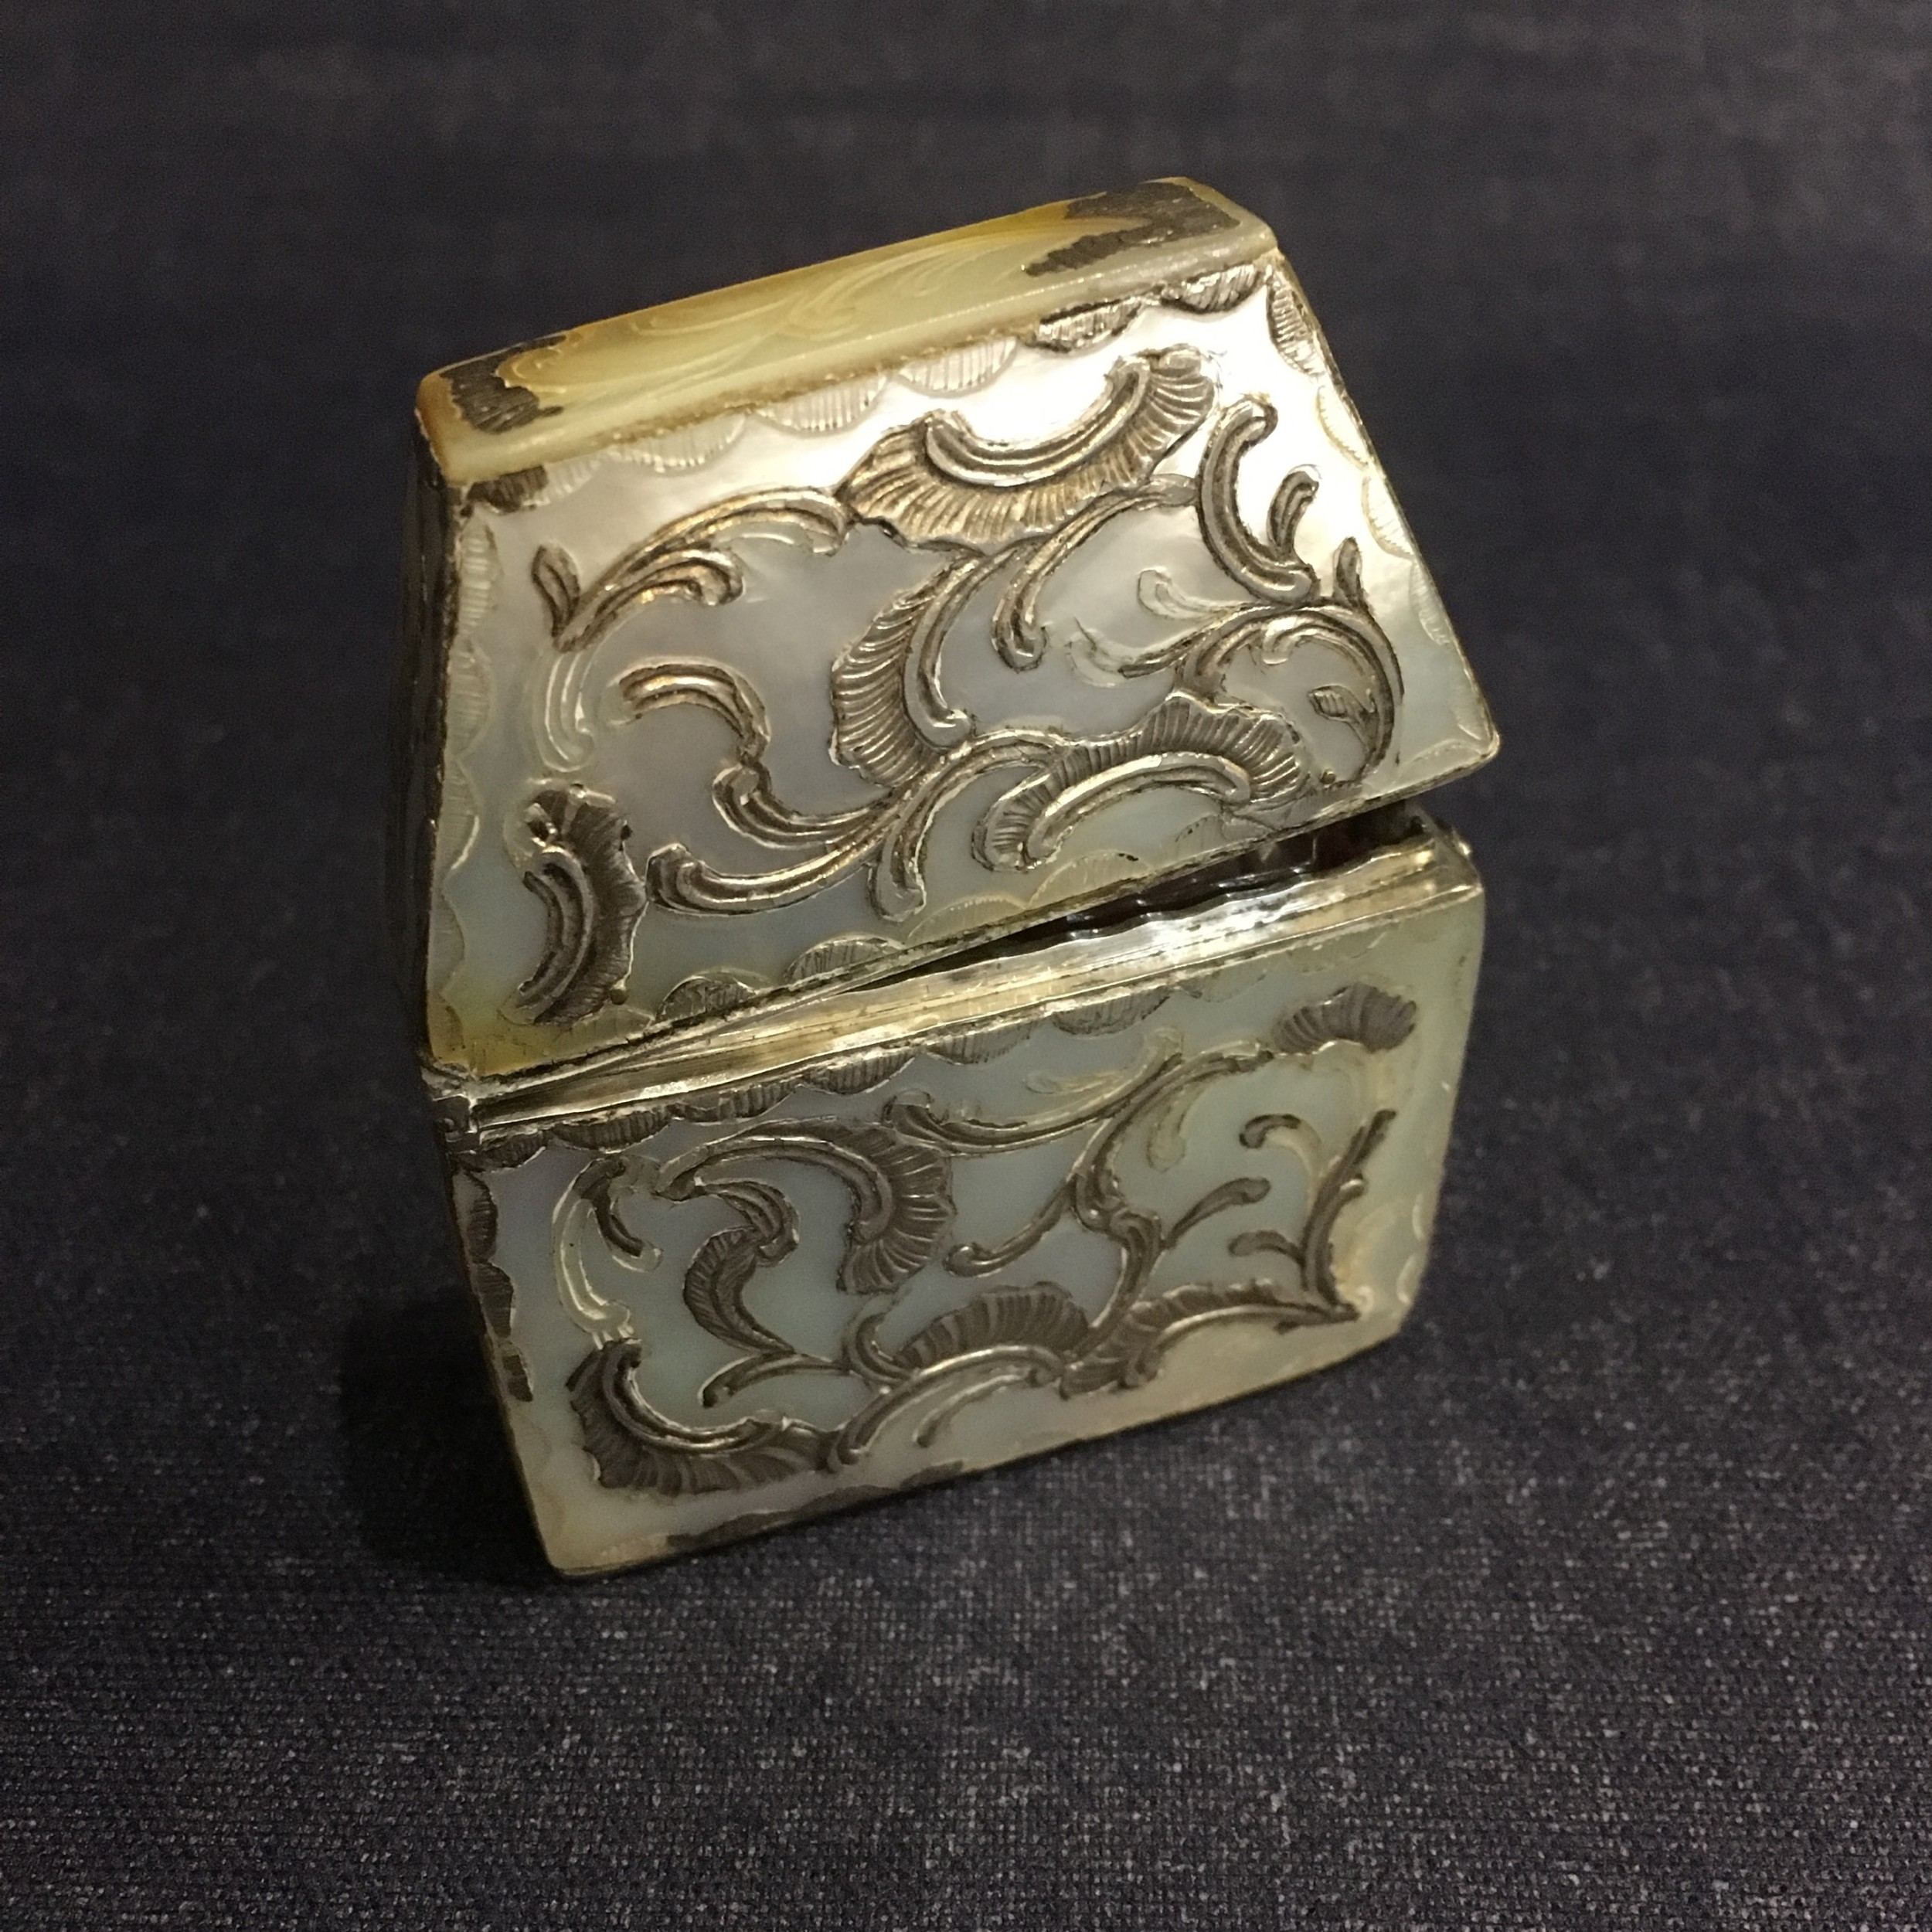 exquisite mother of pearl travelling scent case c1820